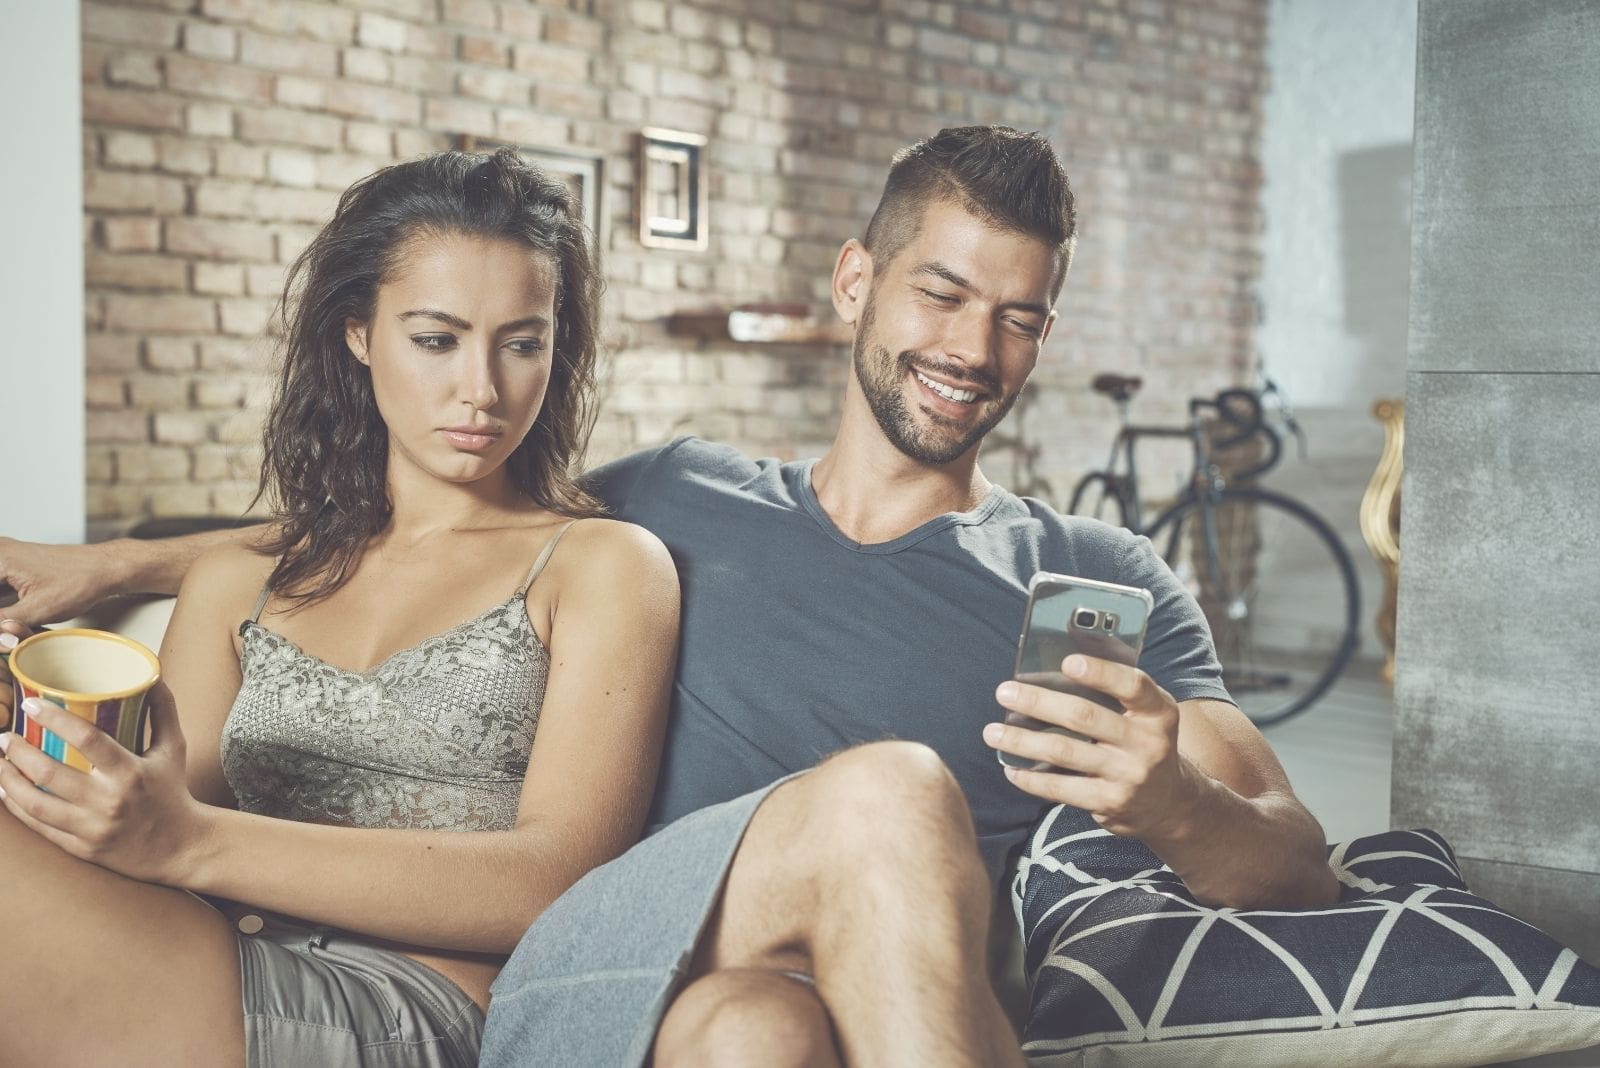 jealous woman sitting beside a happy man texting with legs crossed inside the living room